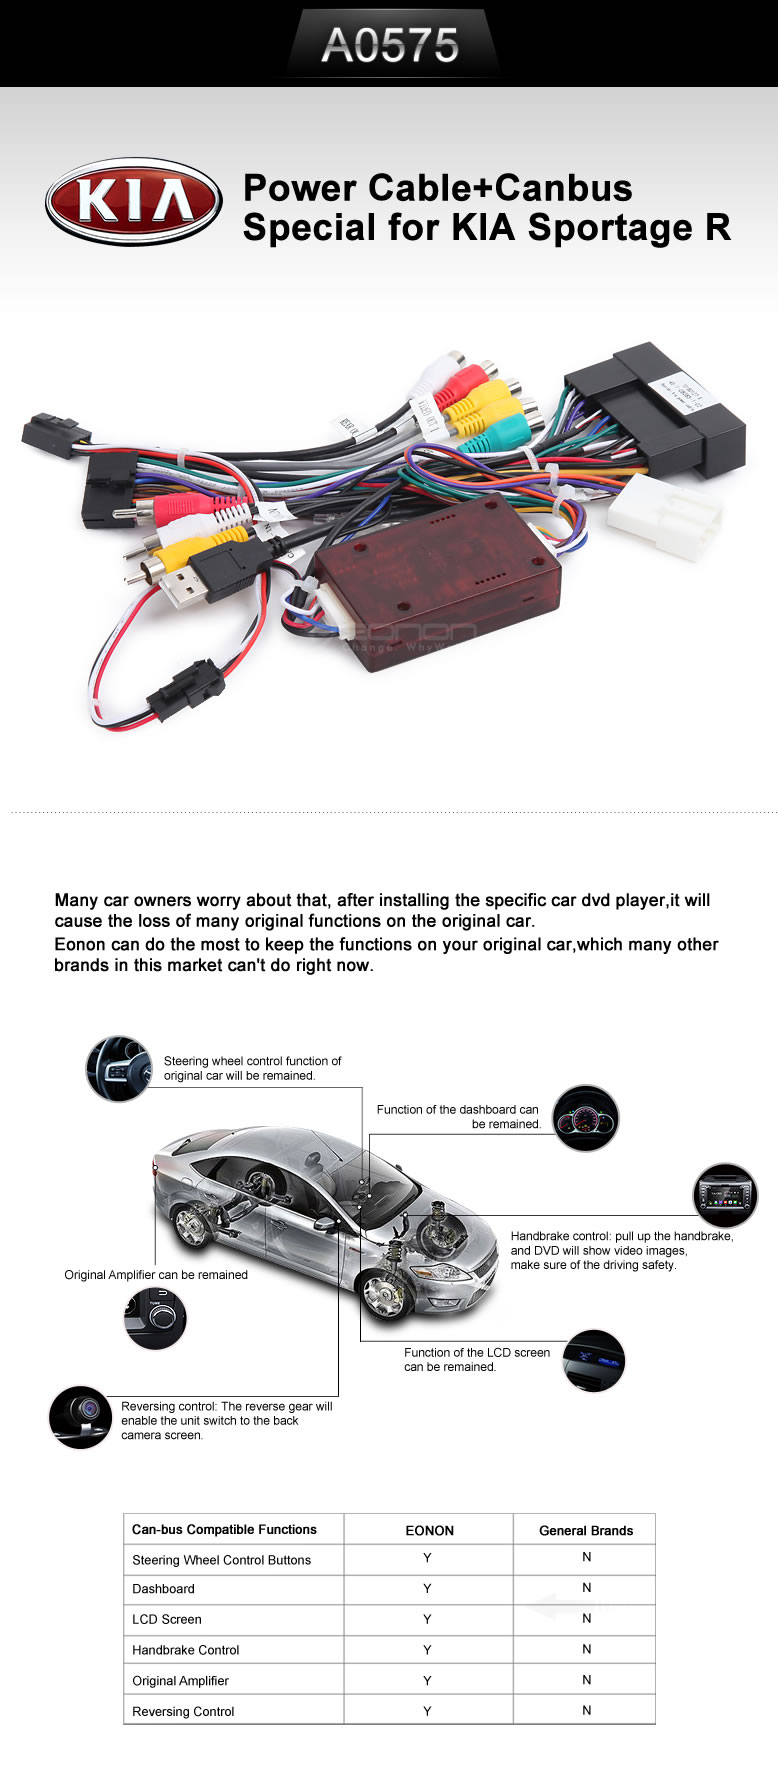 power cable,canbus for Kia Sportage R